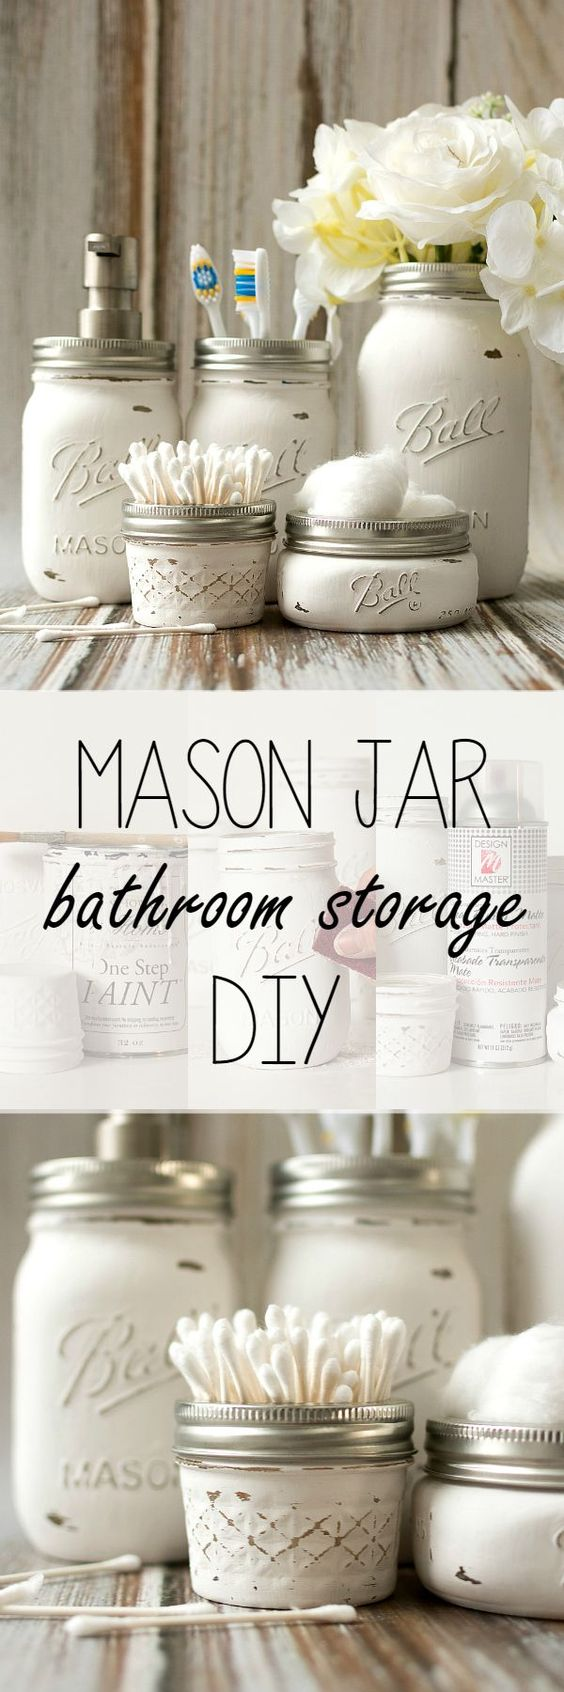 Bathroom Storage on a budget